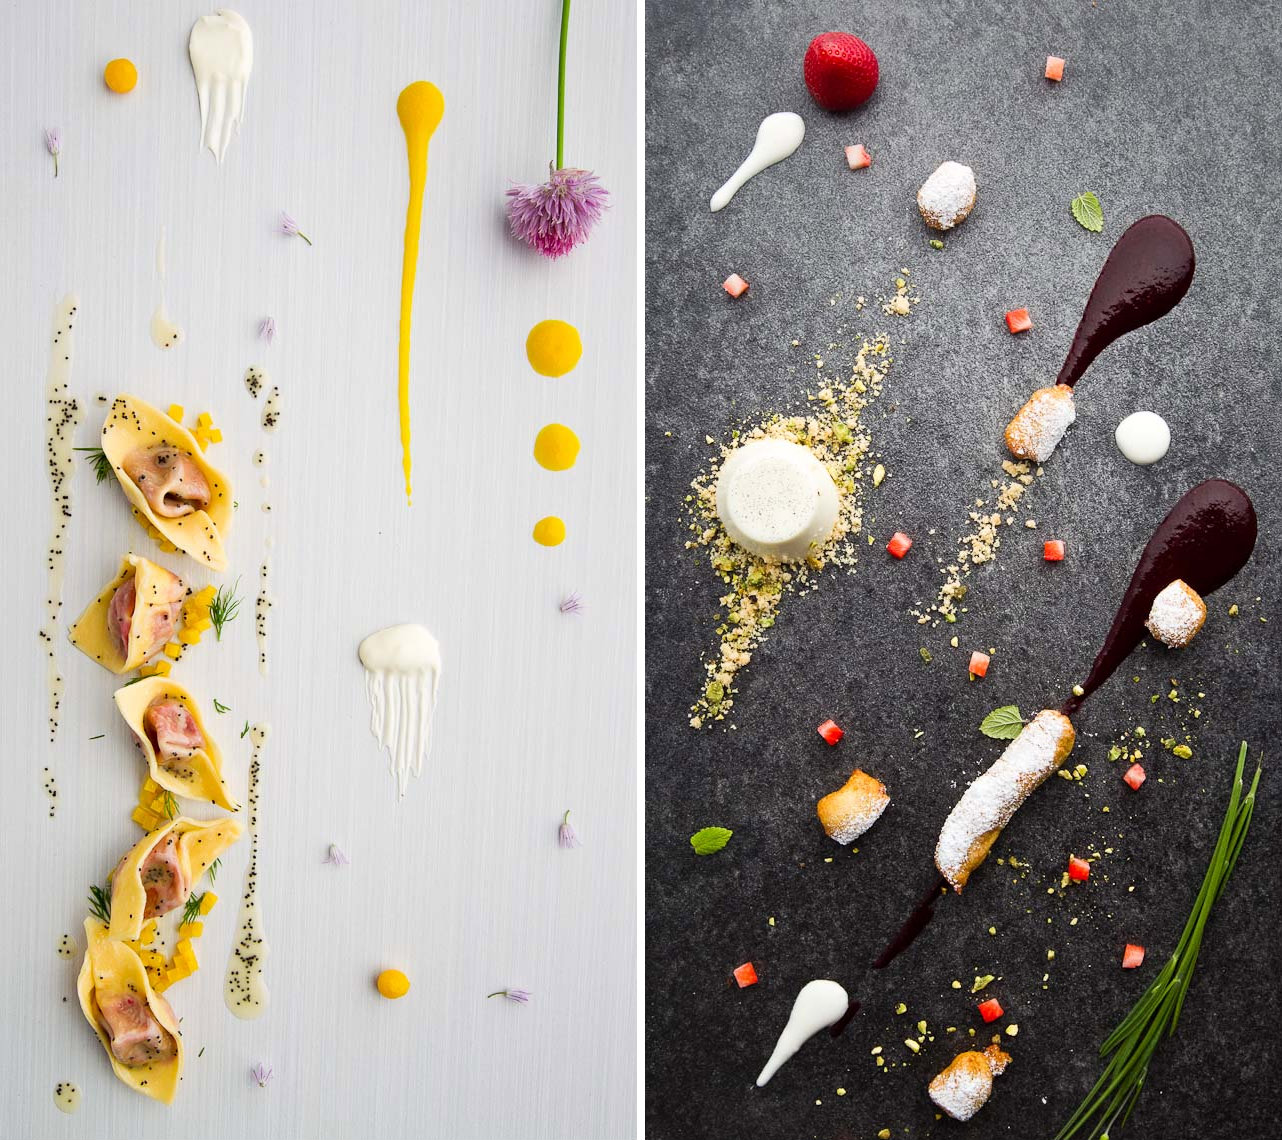 Food photographer in whistler shows ingredients.